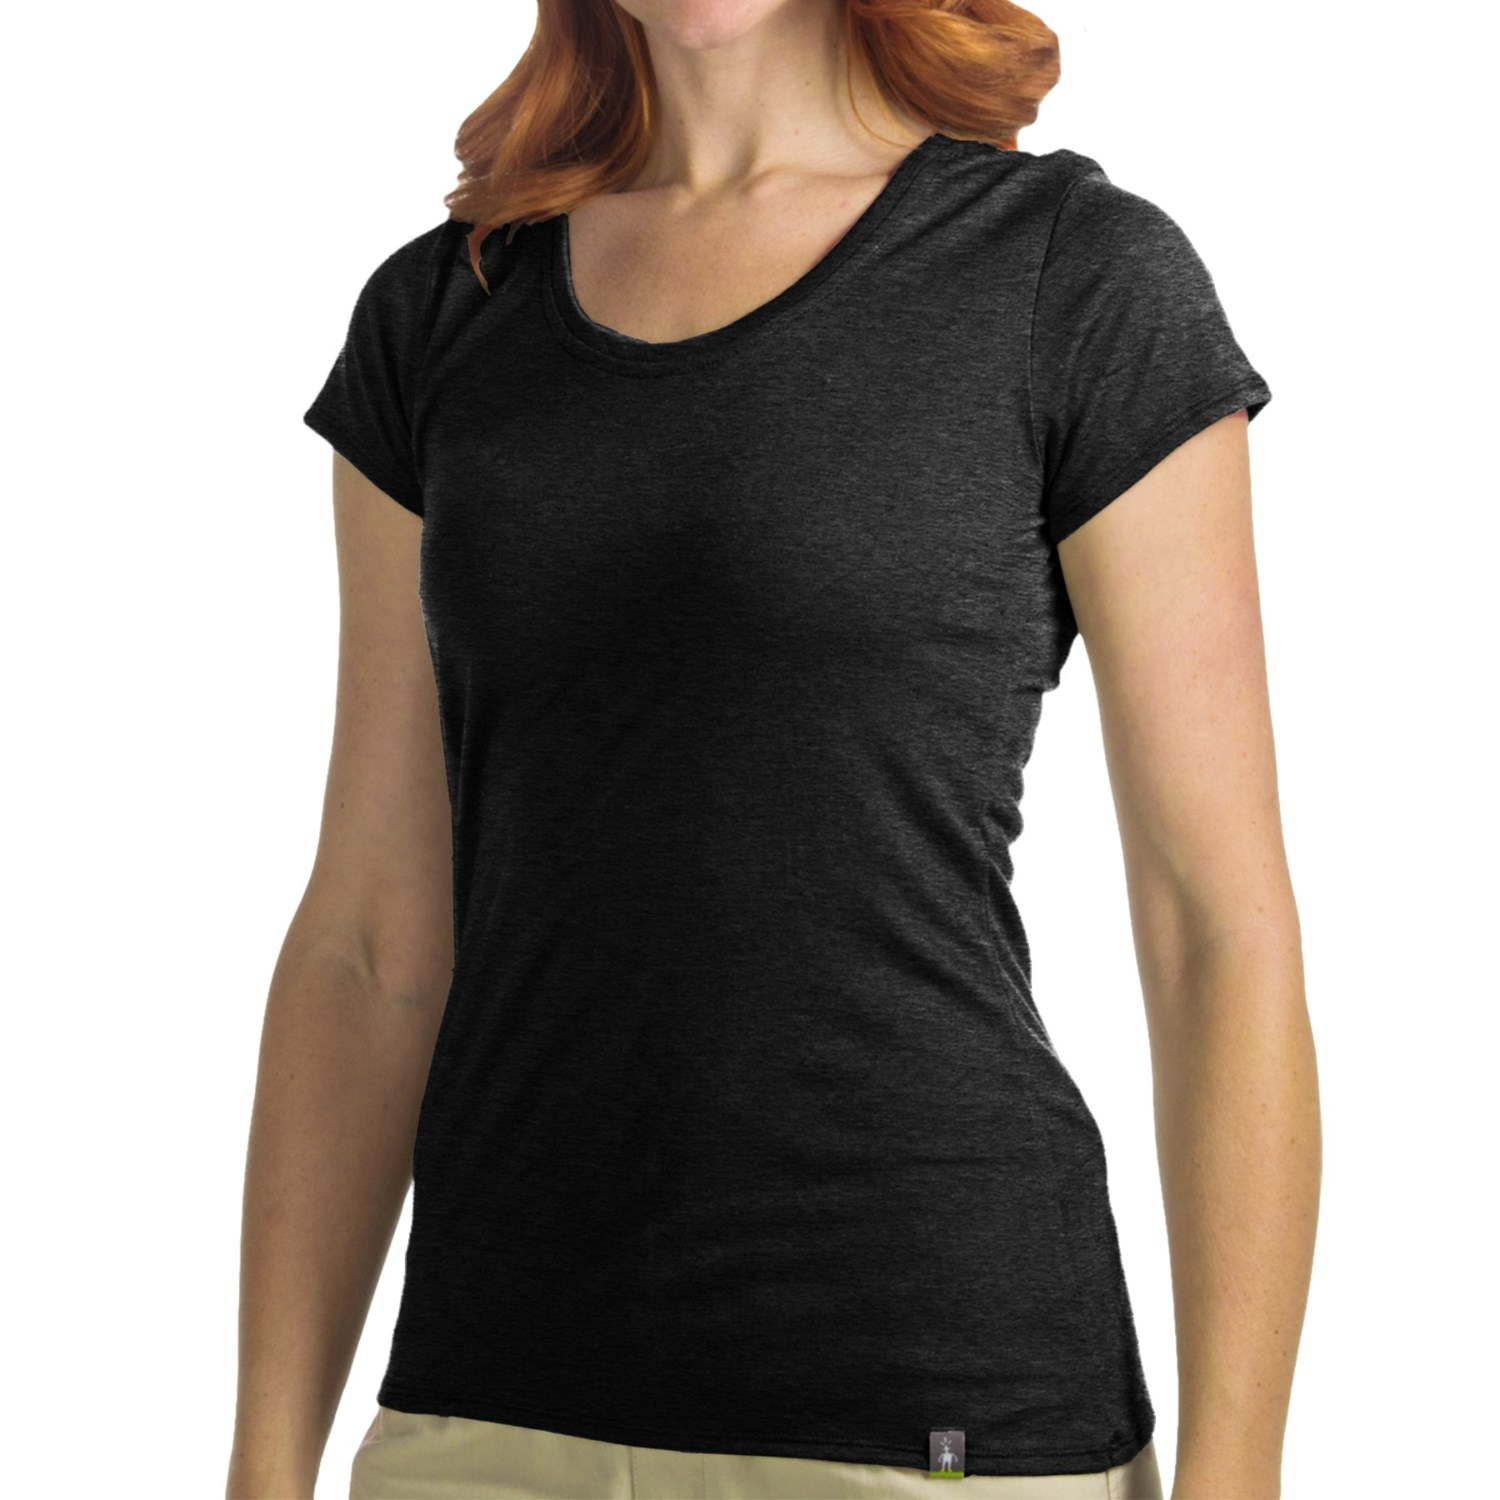 Smartwool u neck t shirt merino wool short sleeve for for Merino wool shirt womens